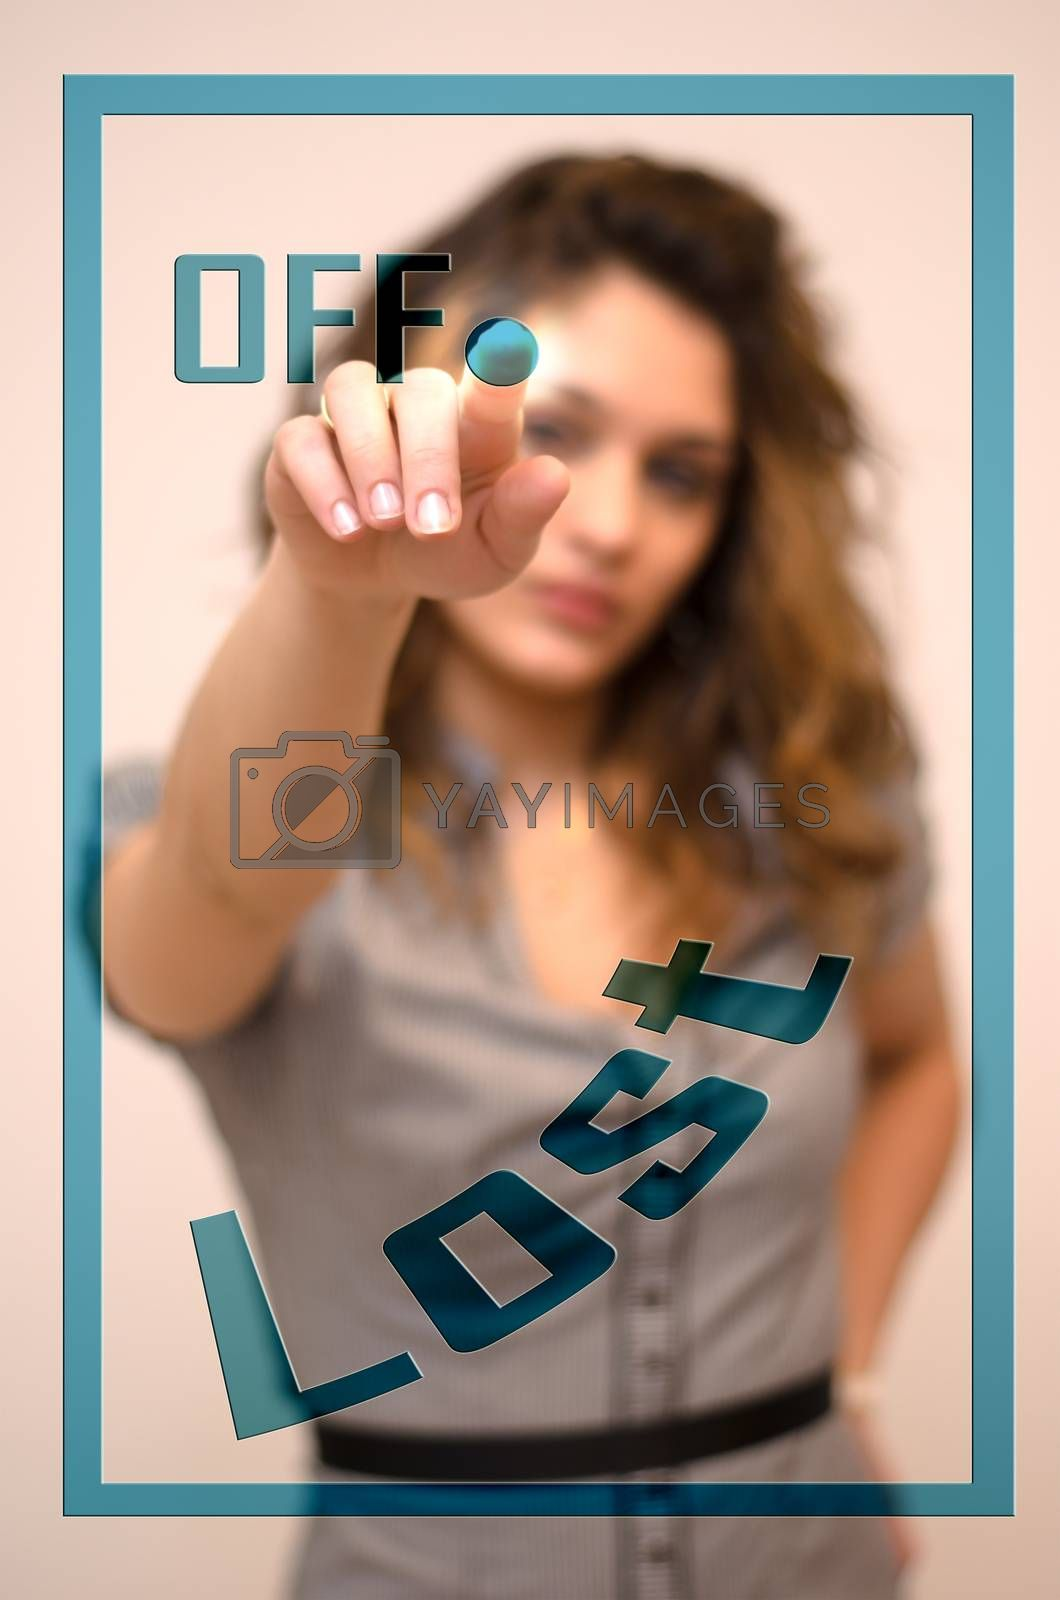 Royalty free image of woman turning off Lost on panel by vepar5